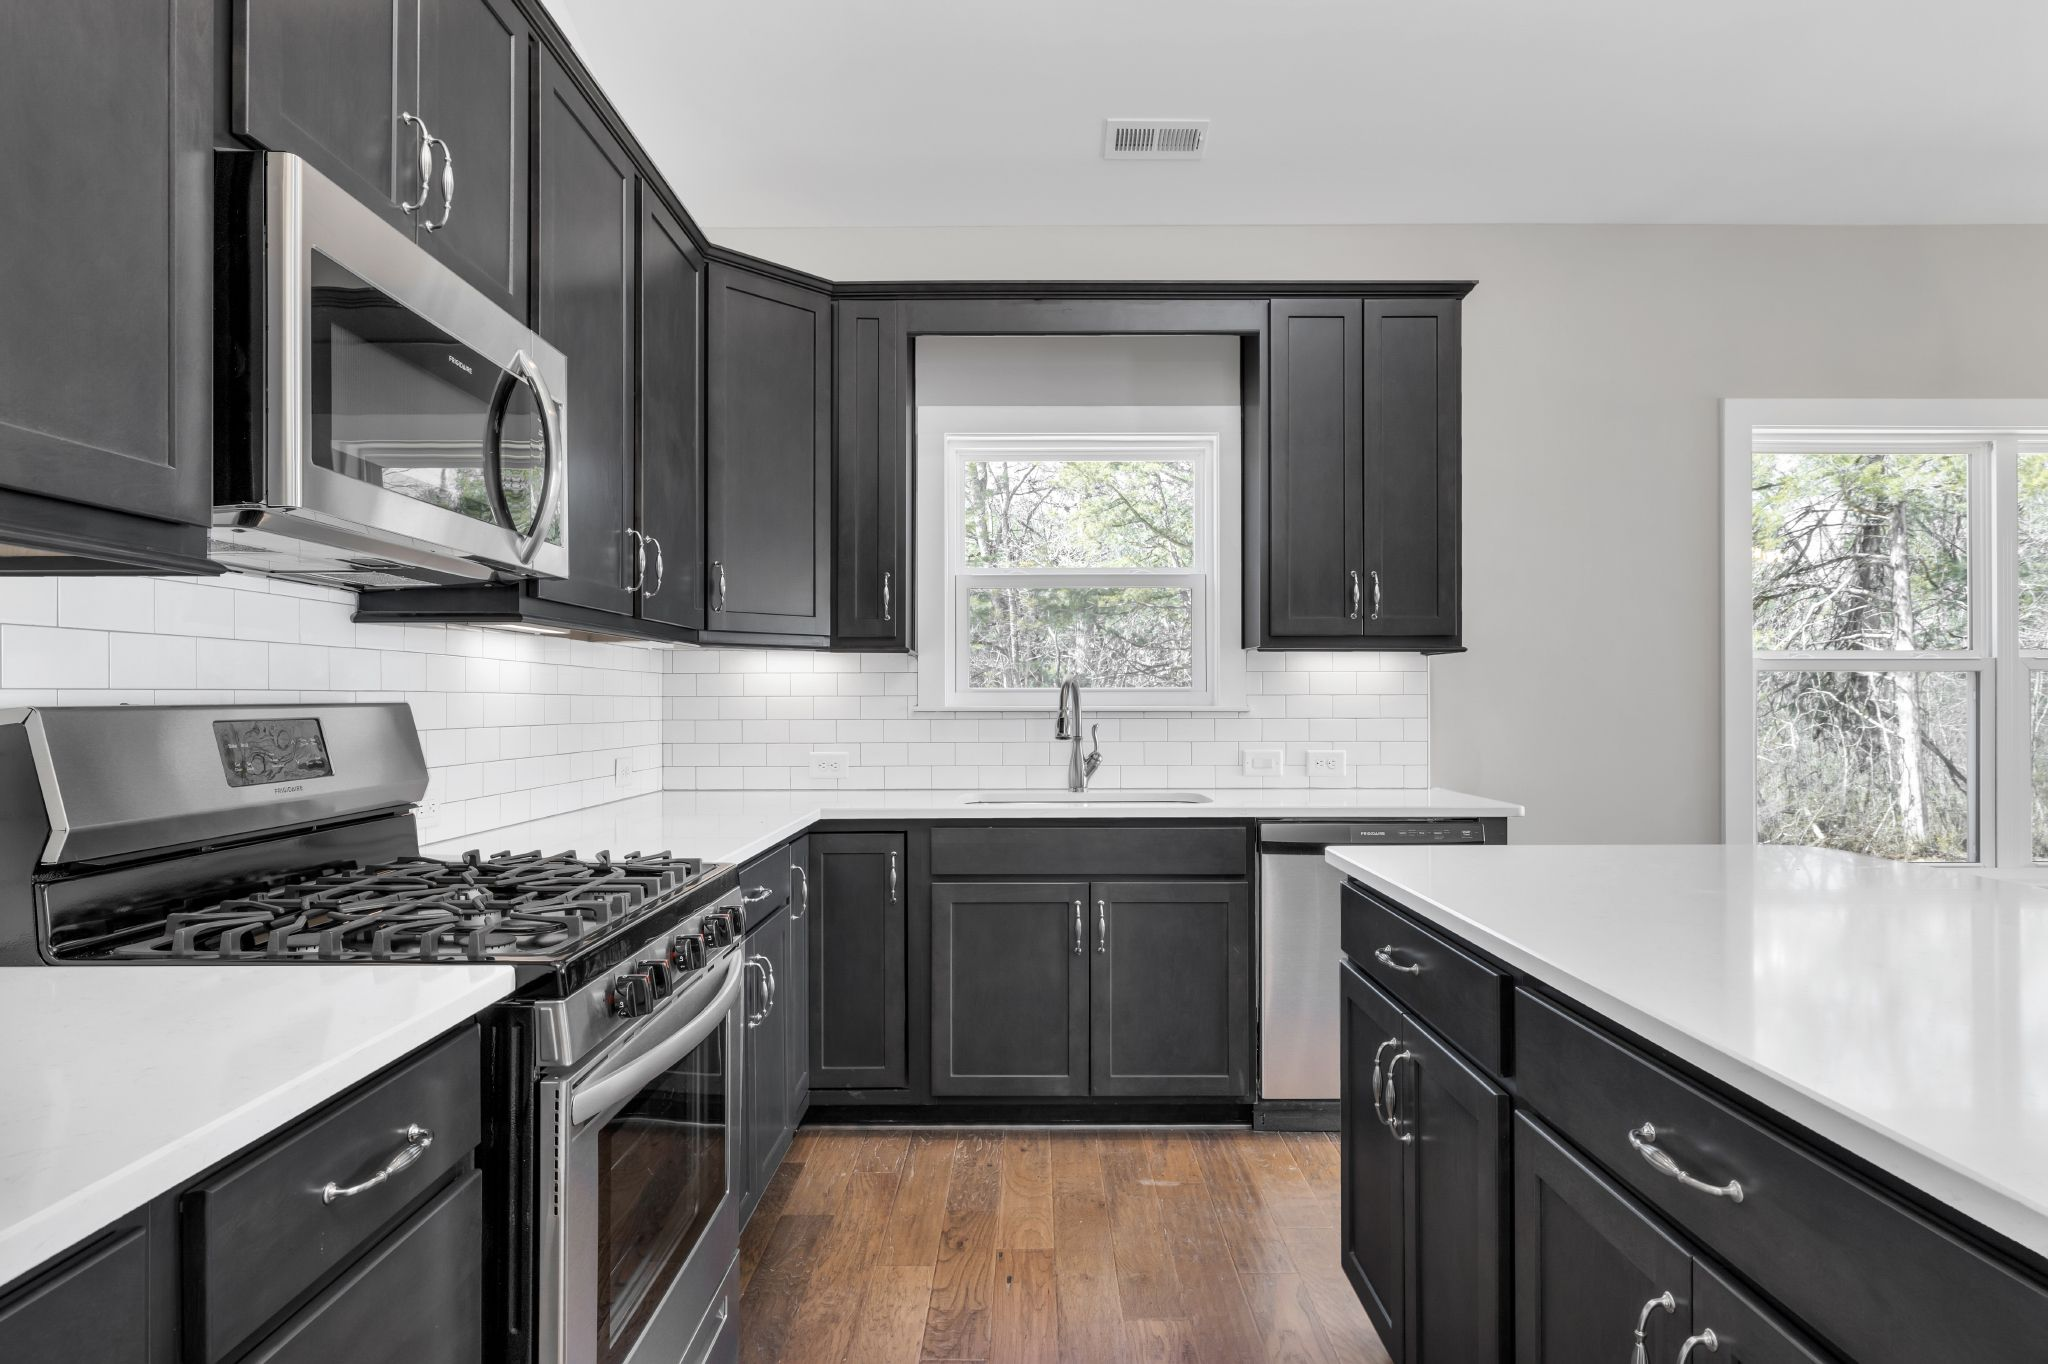 Kitchen featured in The Hanover By Goodall Homes in Chattanooga, TN